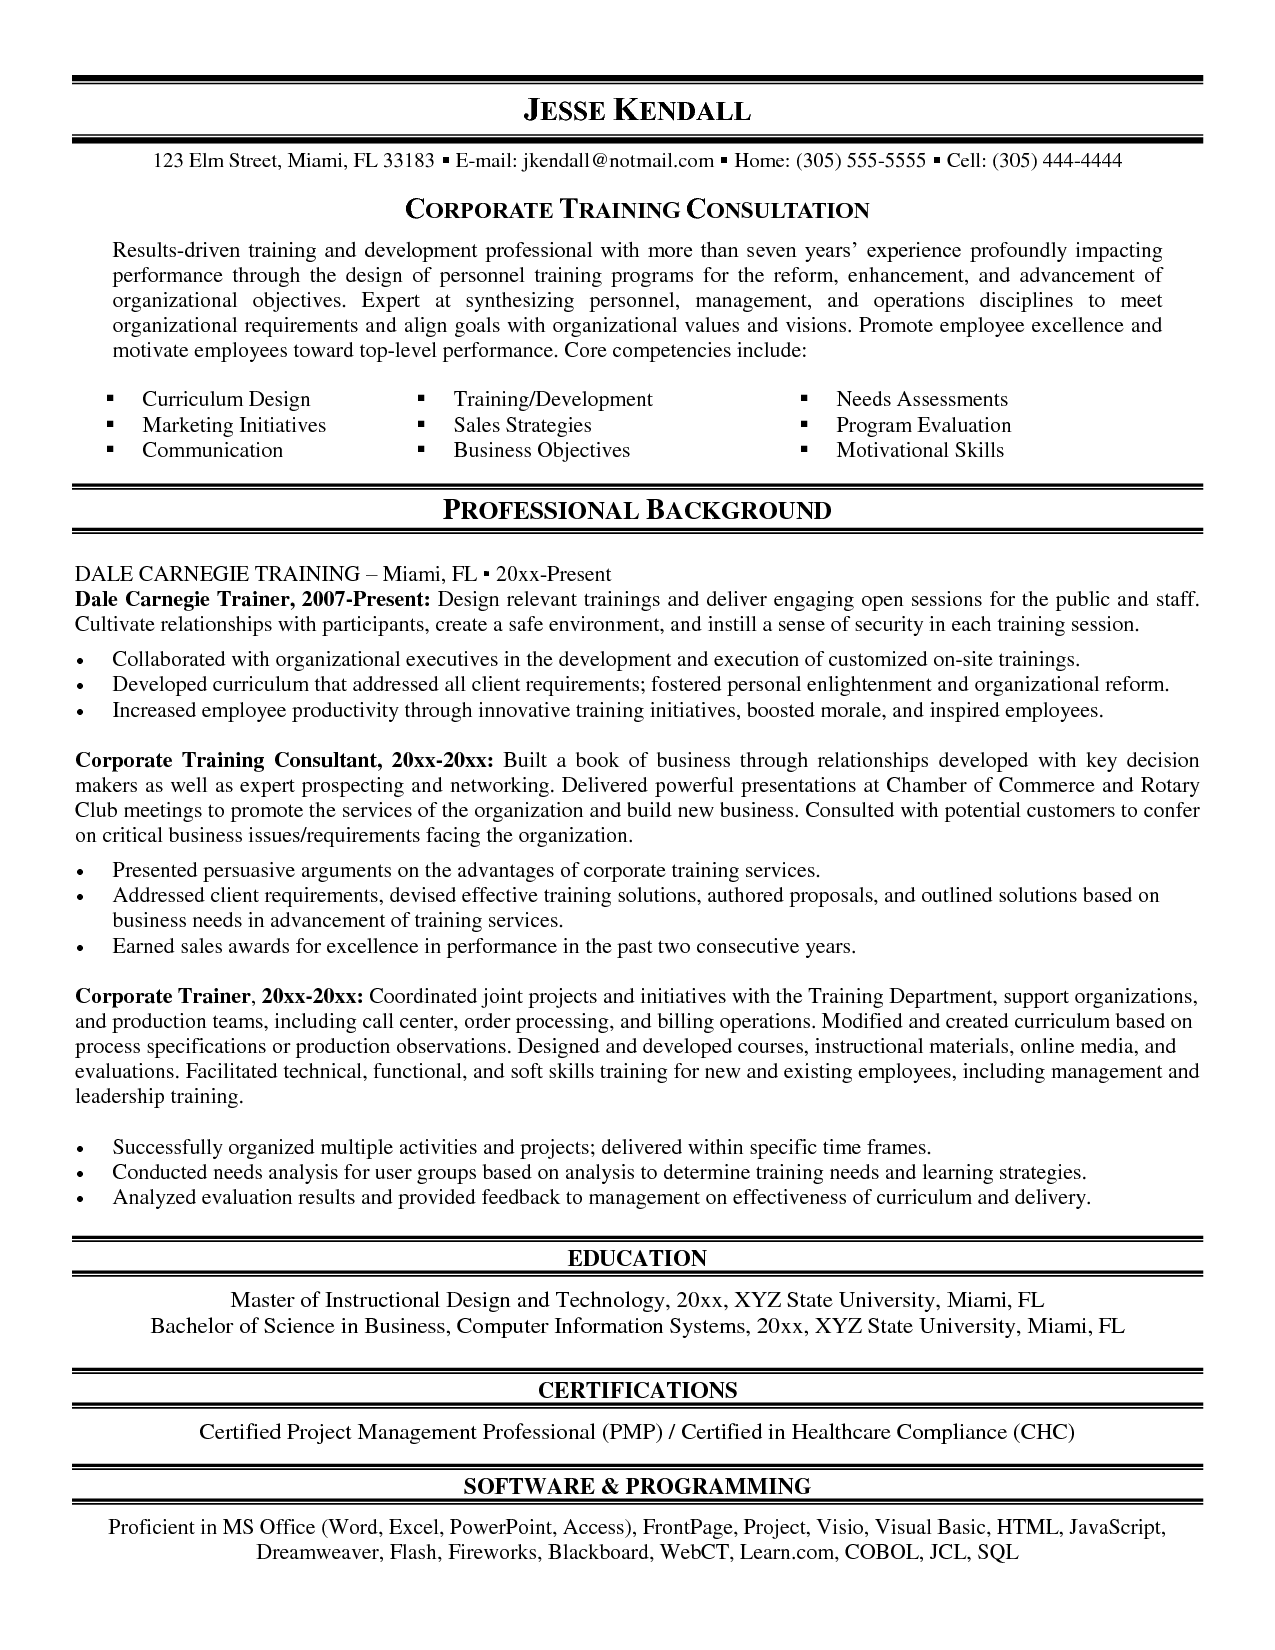 sample resume corporate training manager